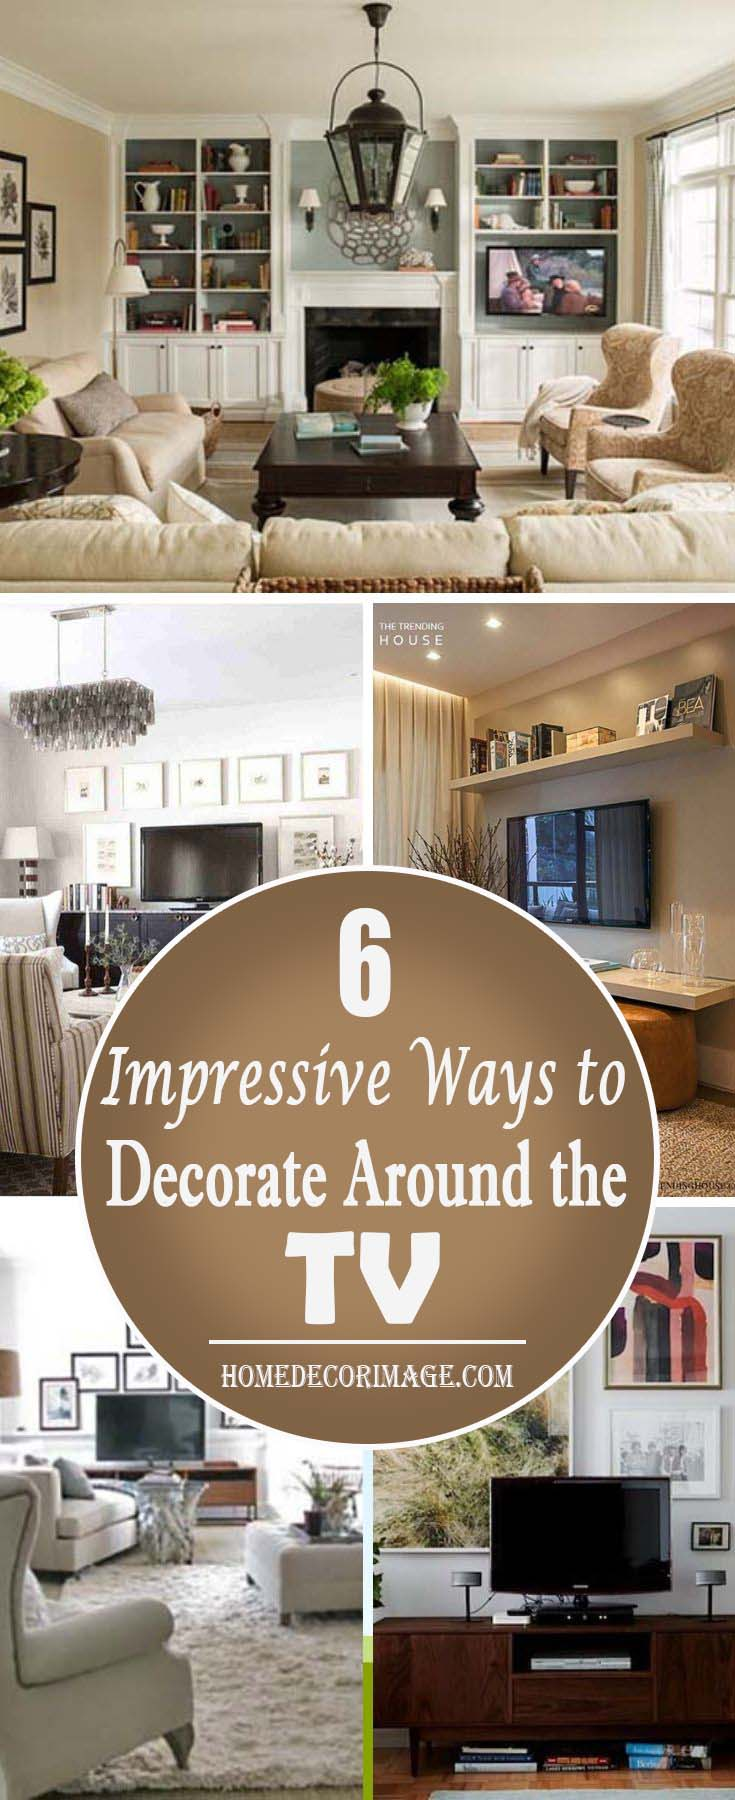 Ways to decorate around the TV. Establish a special media corner and its position among other furniture. #TV decor #home decor #homedecorimage